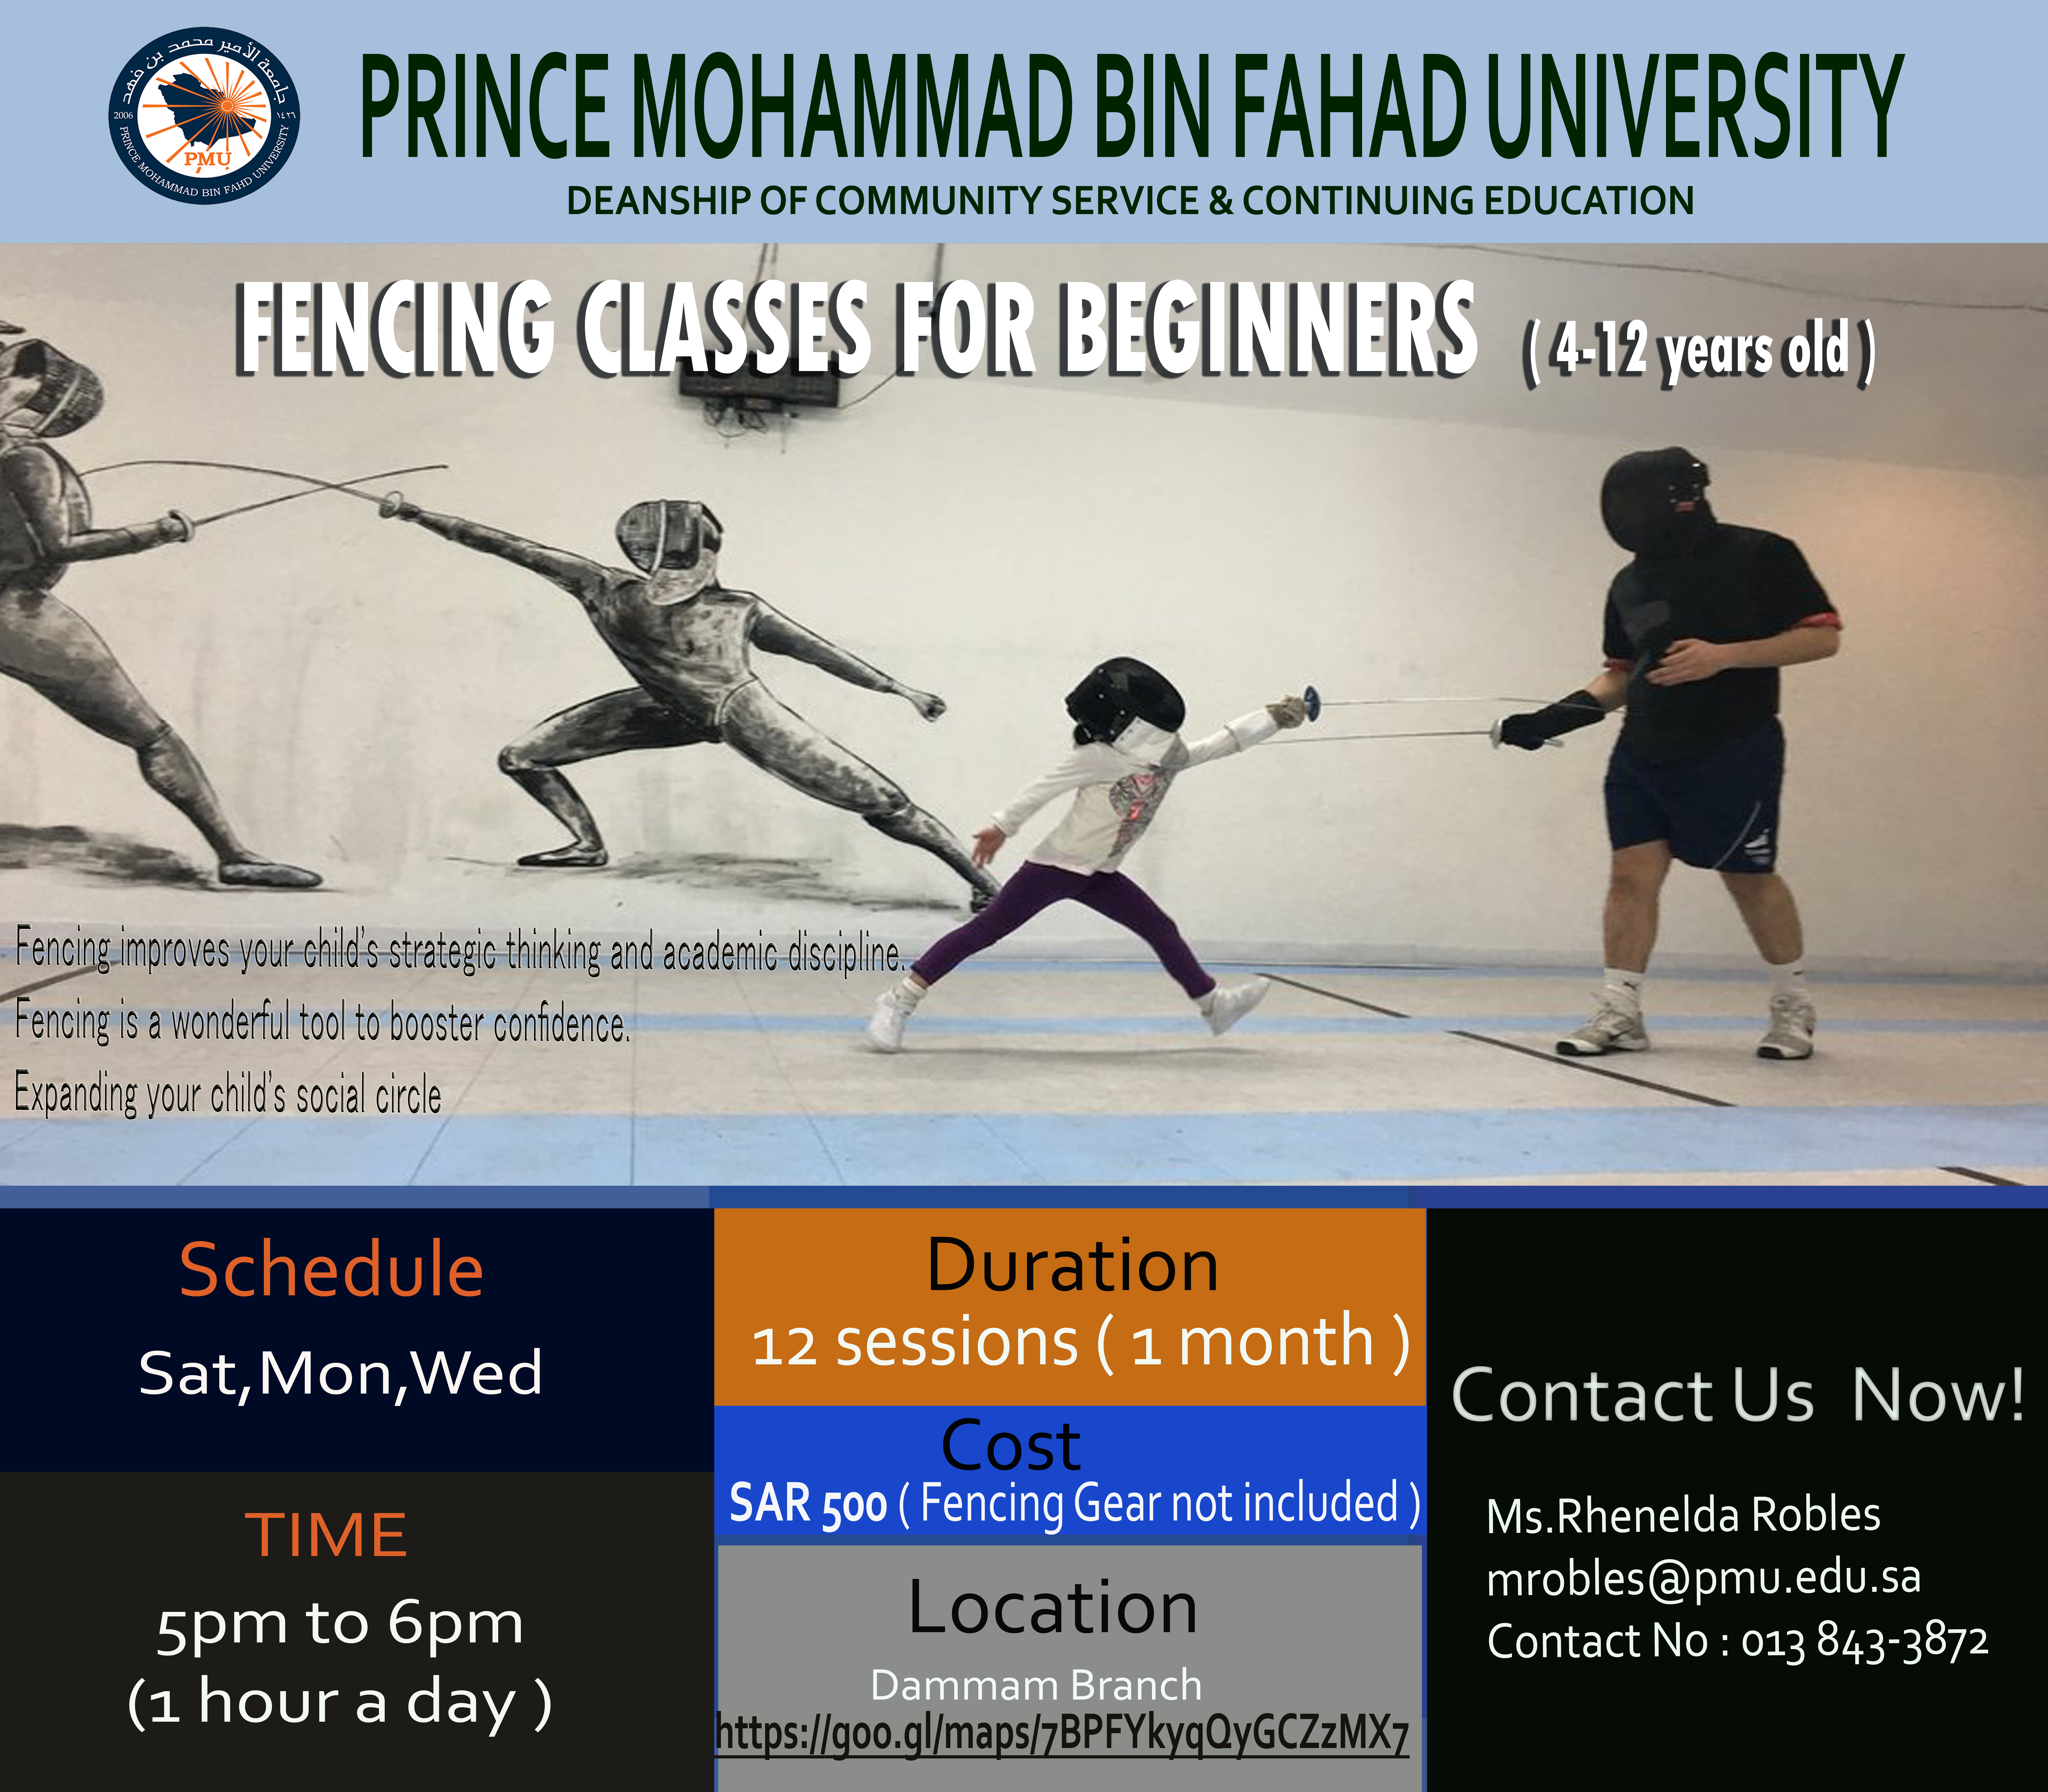 Fencing Classes for Beginners (4-12 years old)